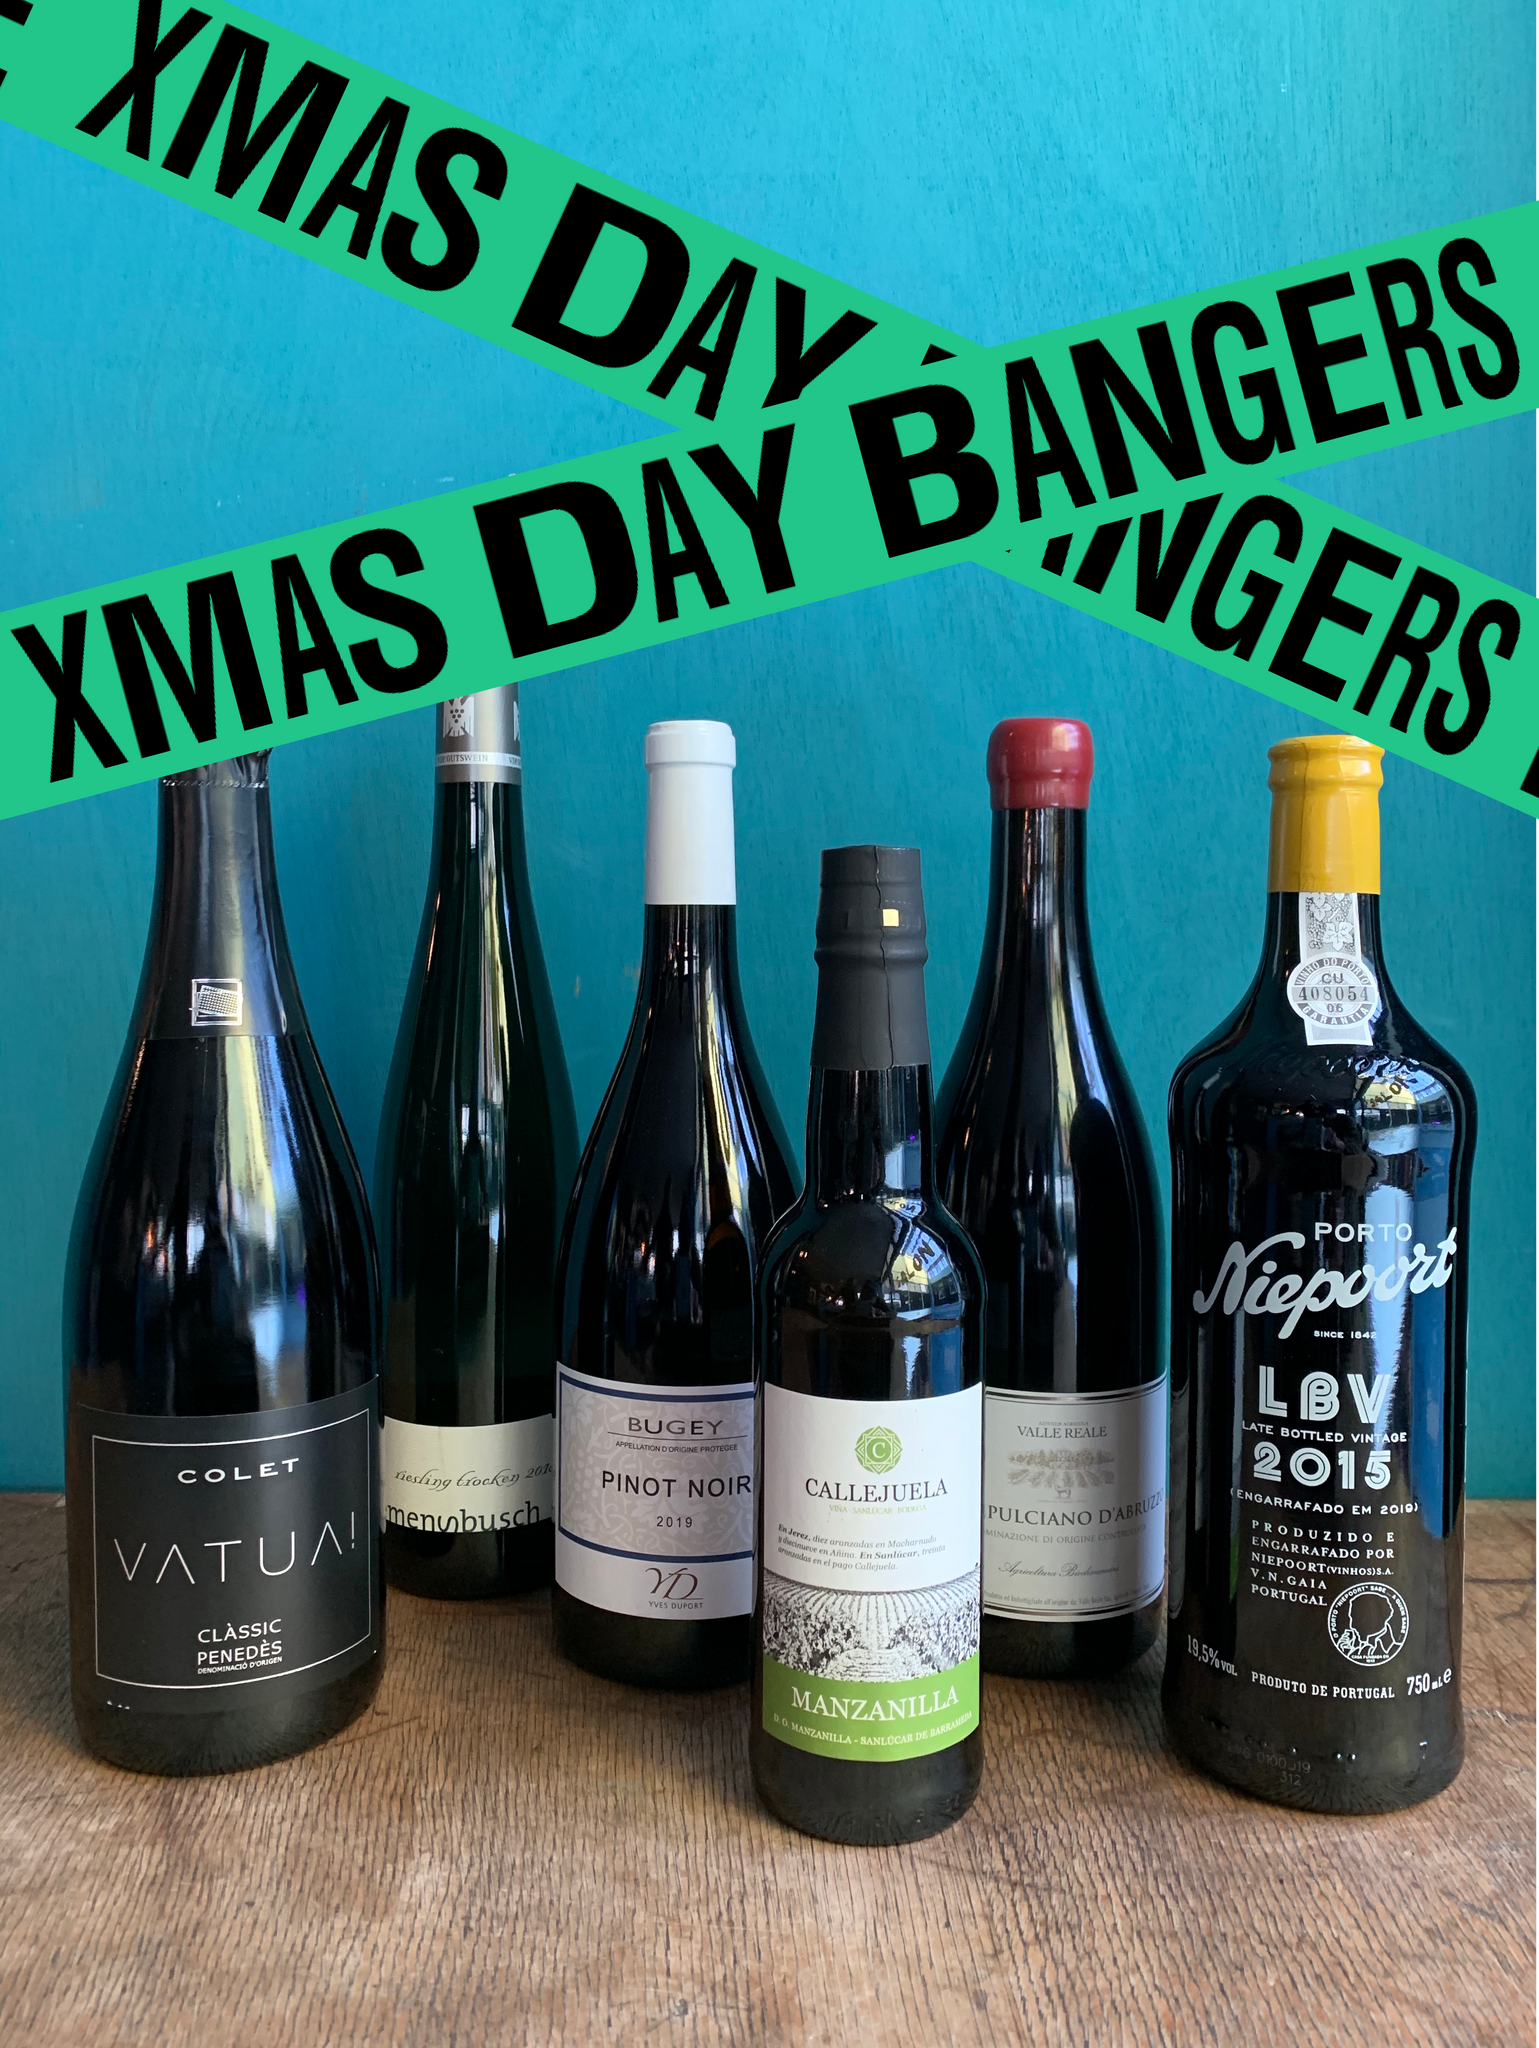 The Complete Xmas Day Bangers Box